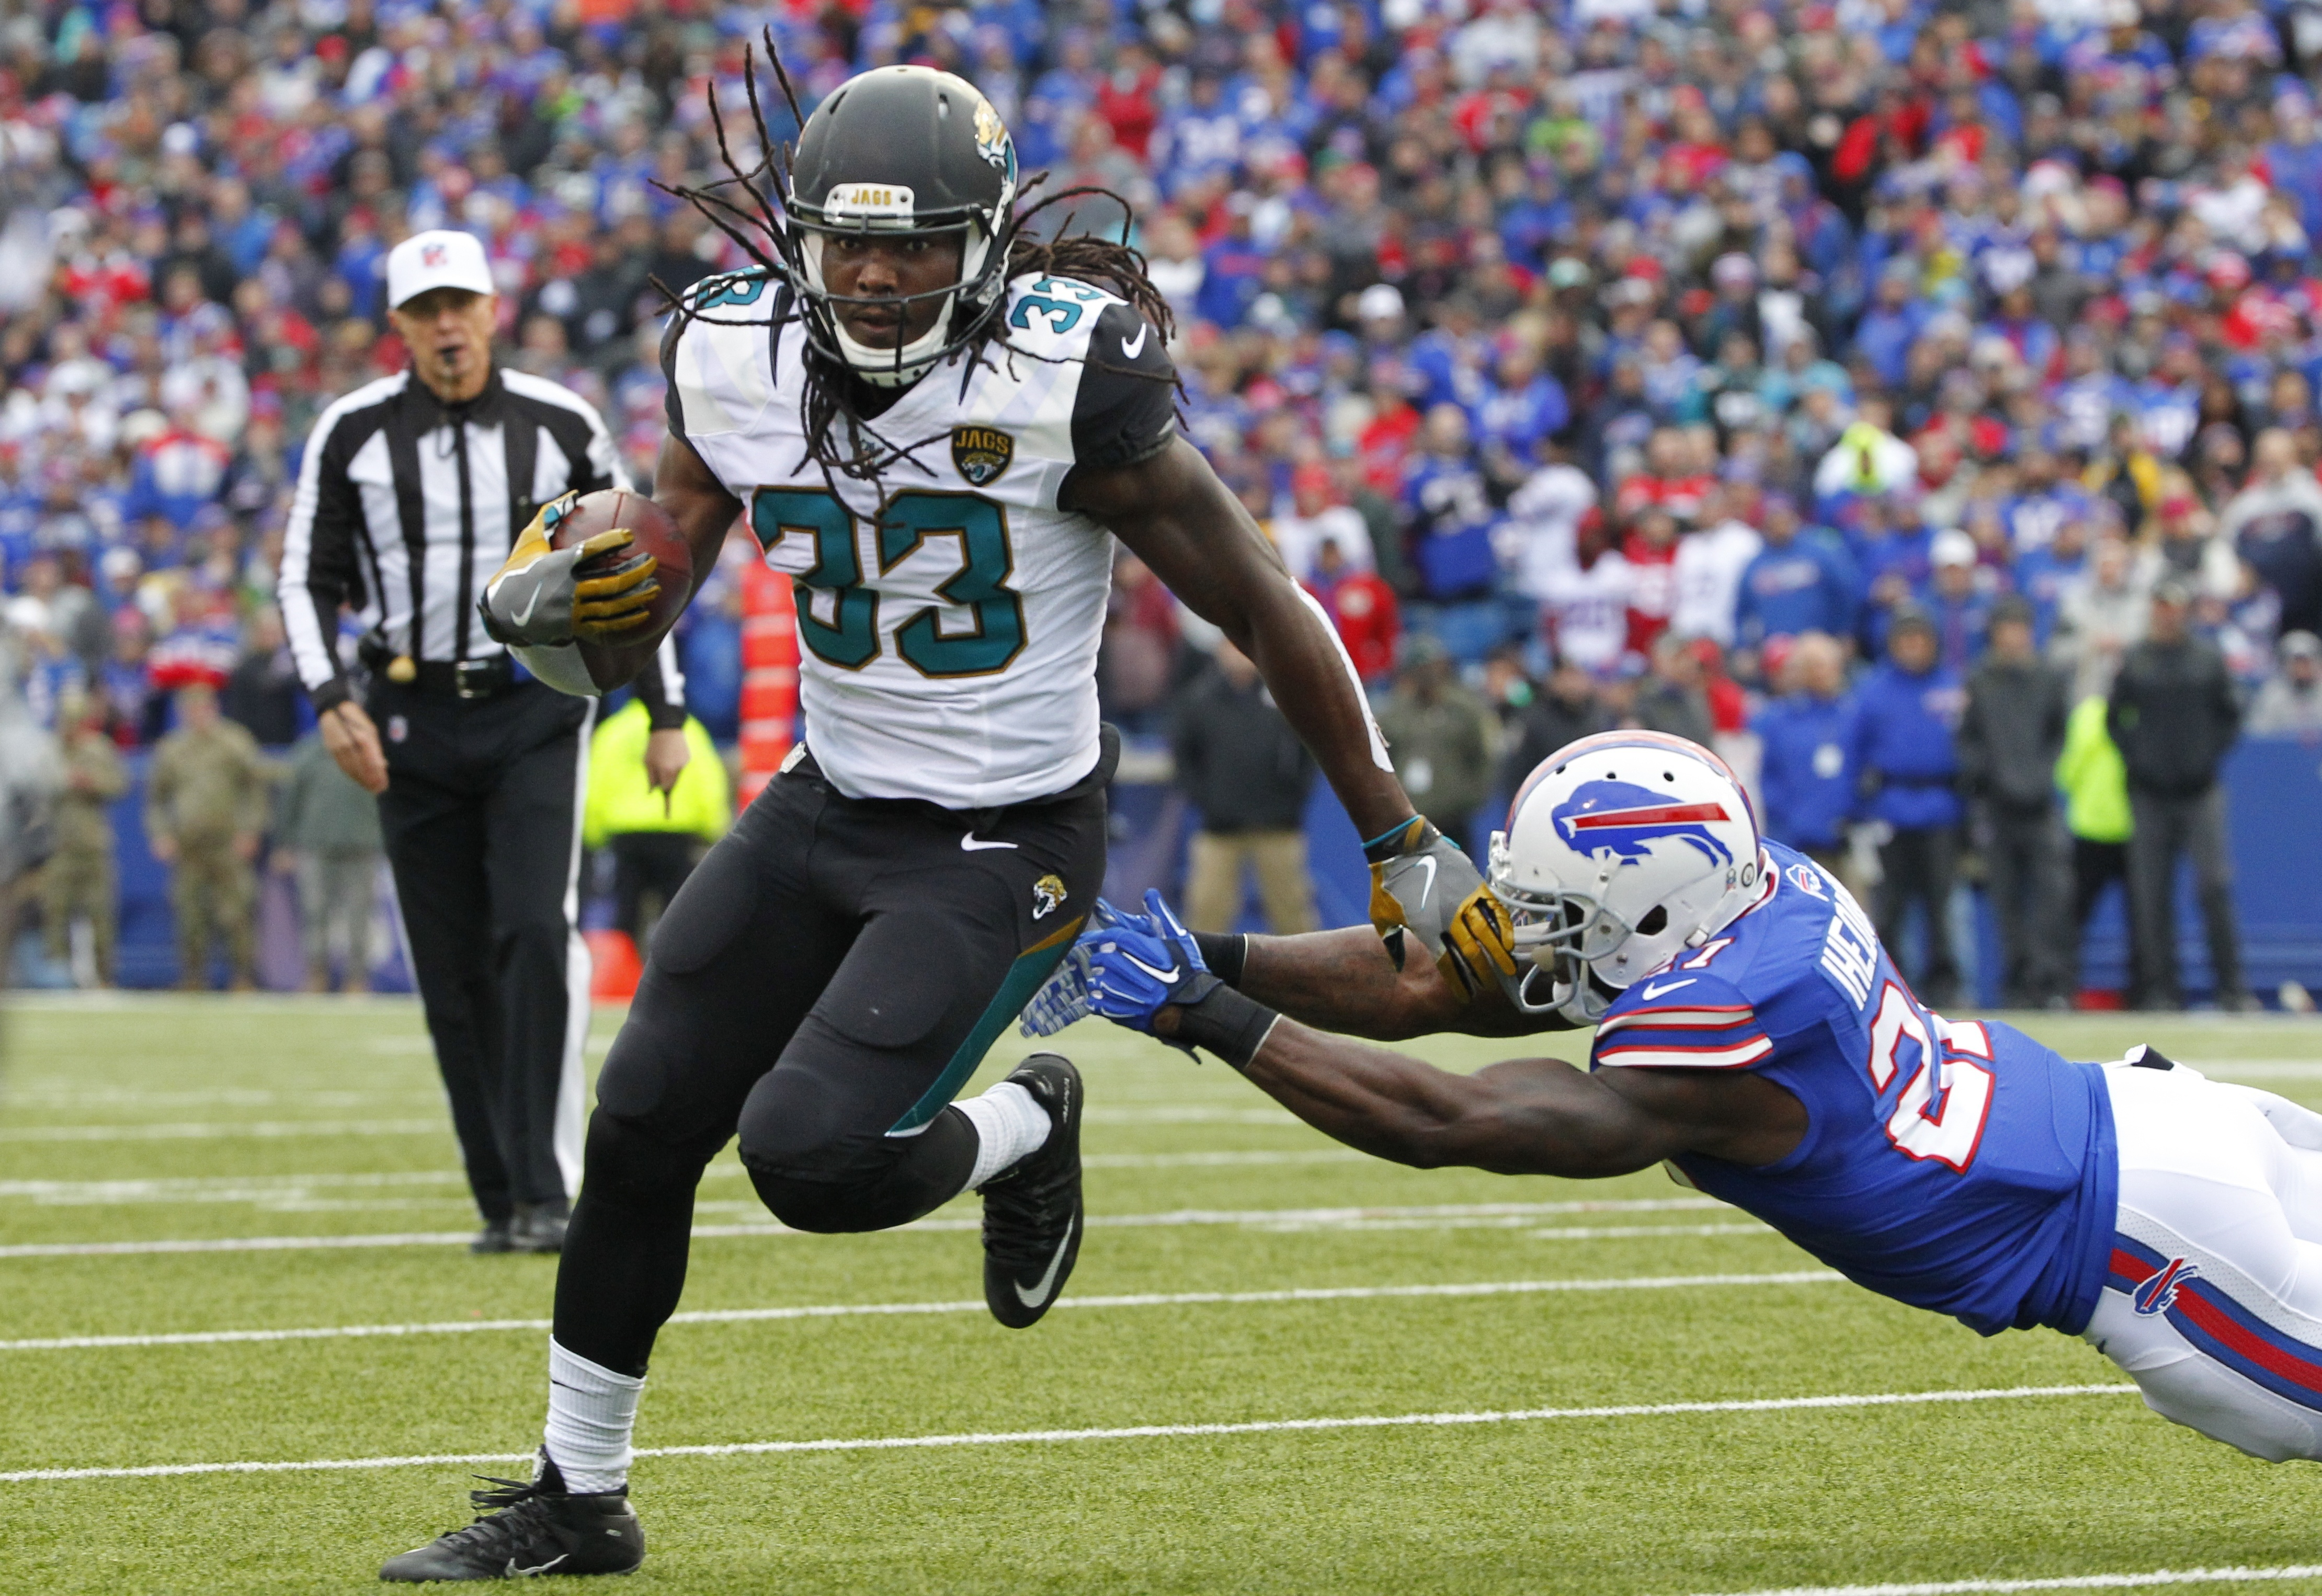 Jacksonville Jaguars running back Chris Ivory (33) breaks a tackle by Buffalo Bills' Nickell Robey-Coleman (21) as he rushes for a touchdown during the first half of NFL football game Sunday, Nov. 27, 2016, in Orchard Park, N.Y. (AP Photo/Bill Wippert)